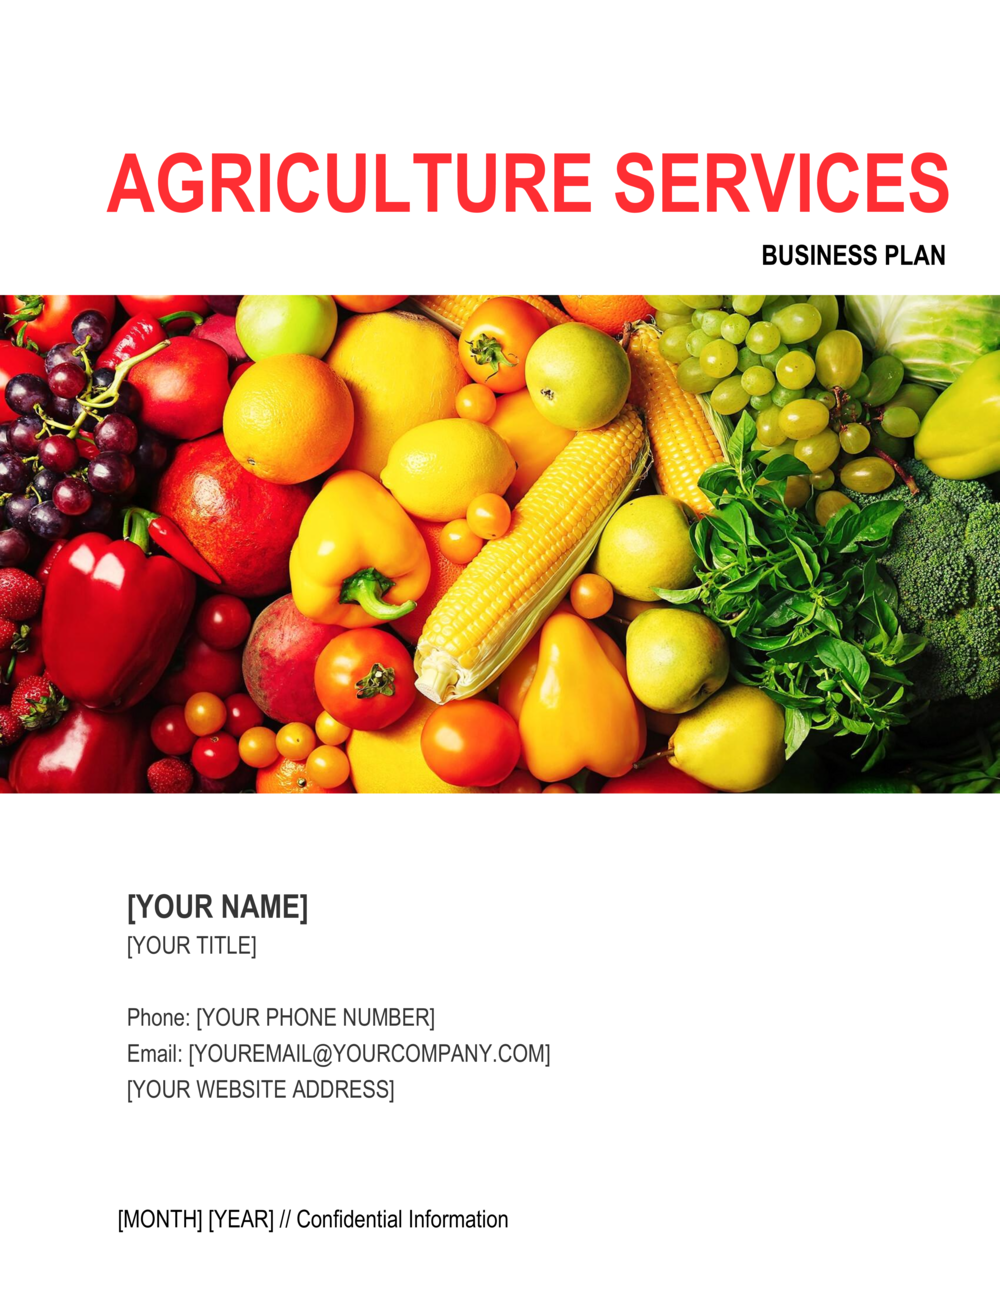 Business-in-a-Box's Agriculture Services Business Plan 2 Template